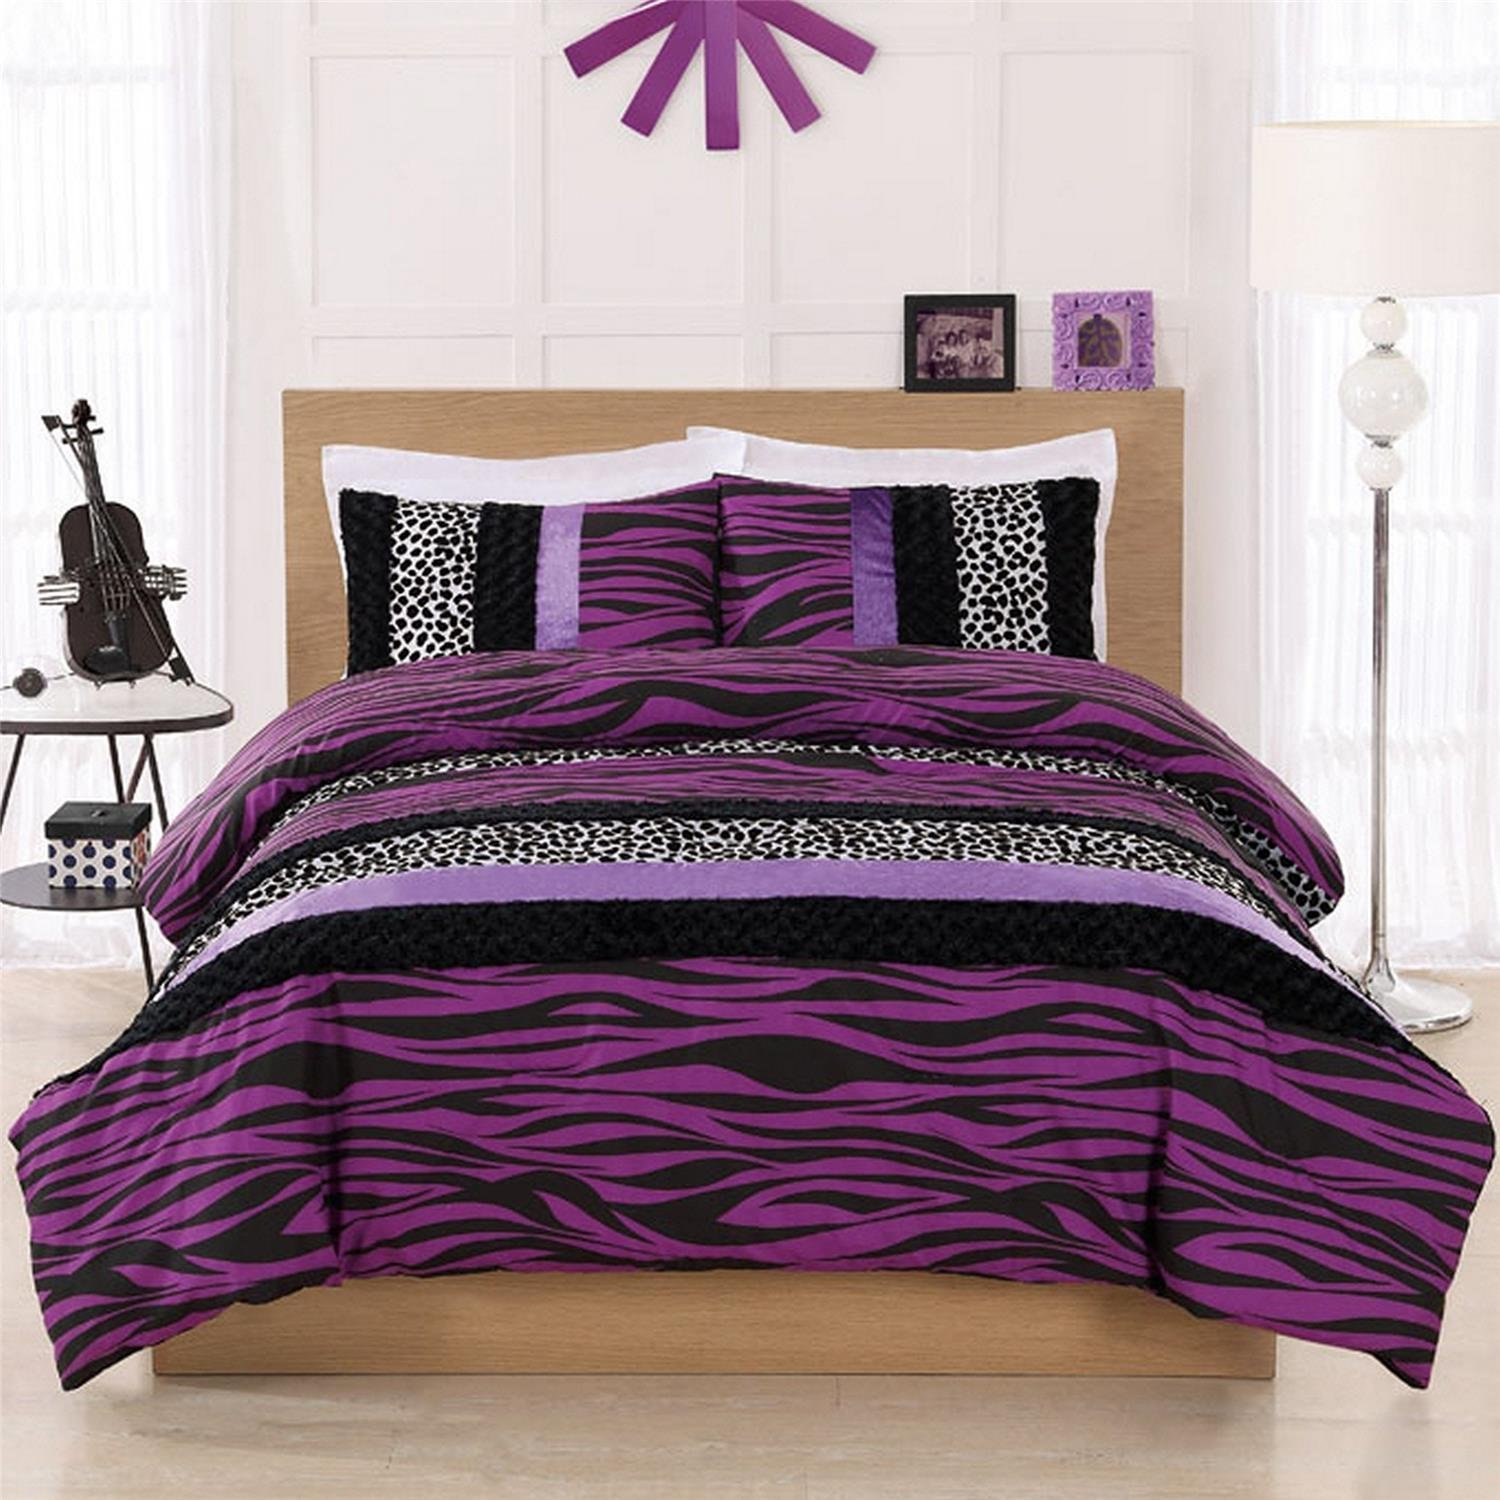 Total fab purple zebra cheetah and leopard print Zebra print bedding